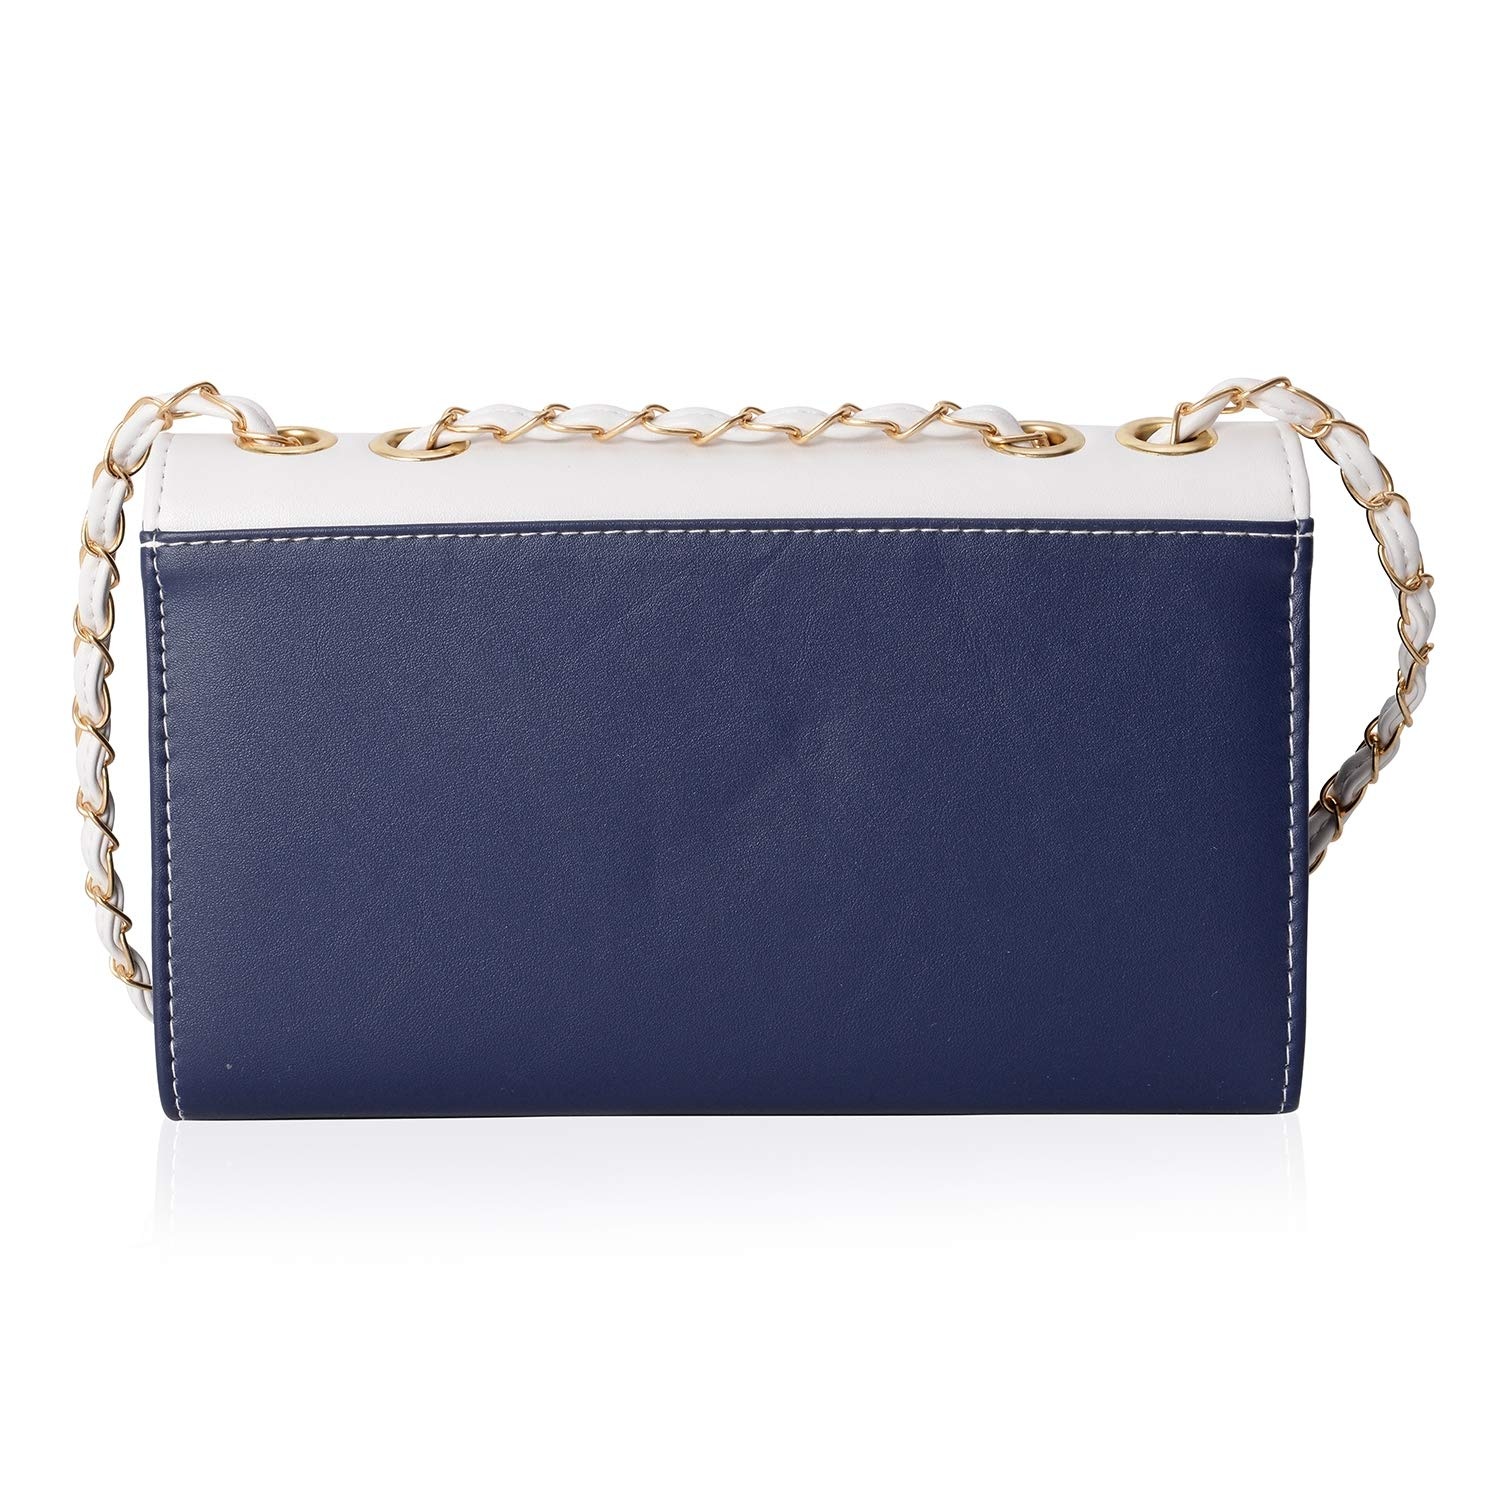 Navy and White Flap Over Crossbody Bag 10x3x6